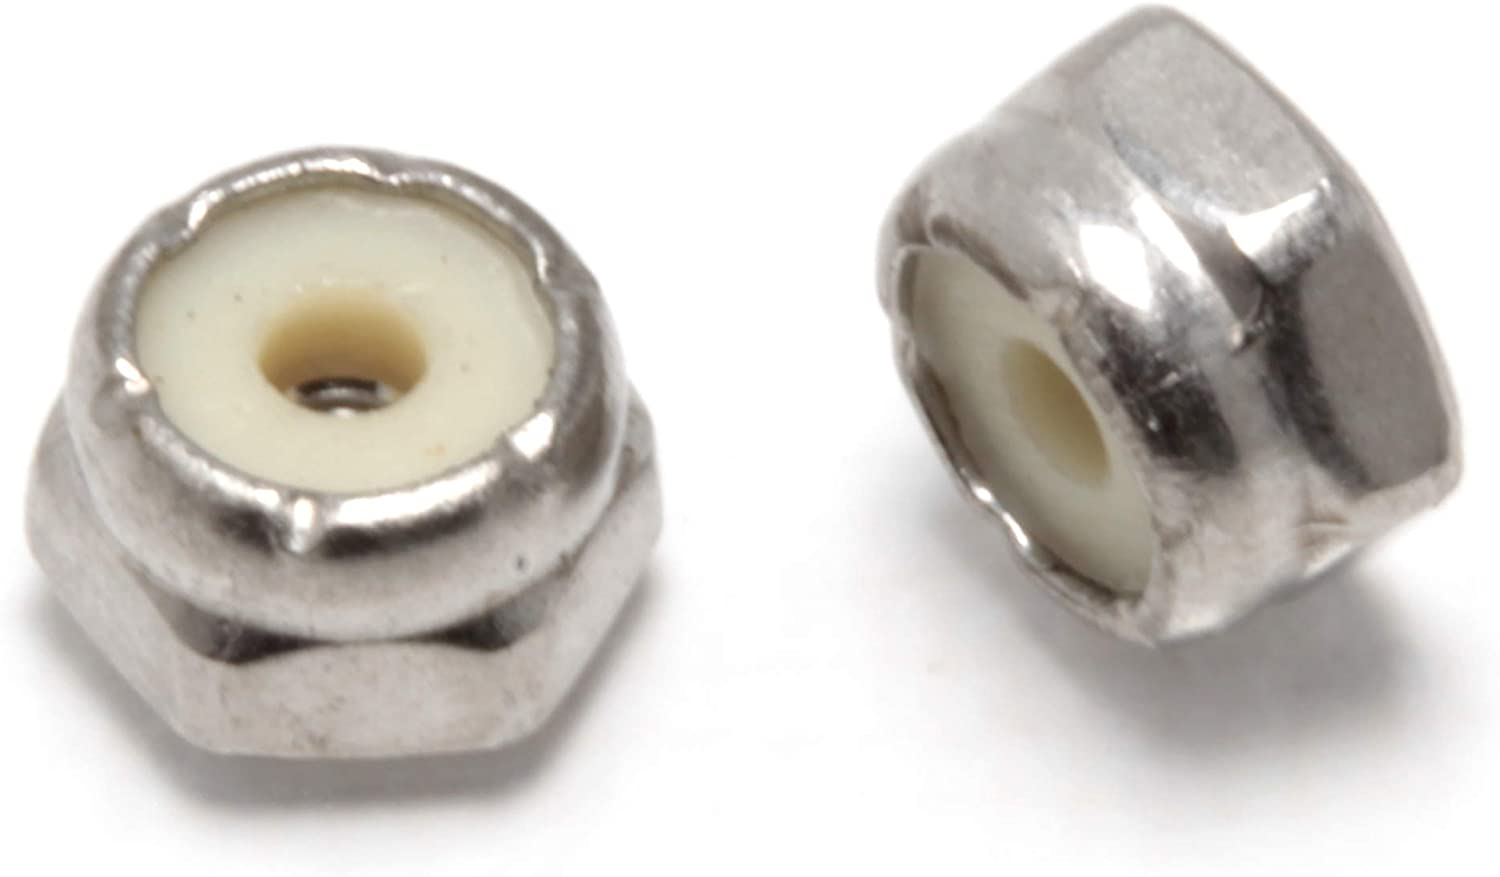 #5-40 Stainless Hex Lock Nut (100 Pack), by Bolt Dropper, 304 (18-8) Stainless Steel Lock Nuts 61Agt-qiP-L